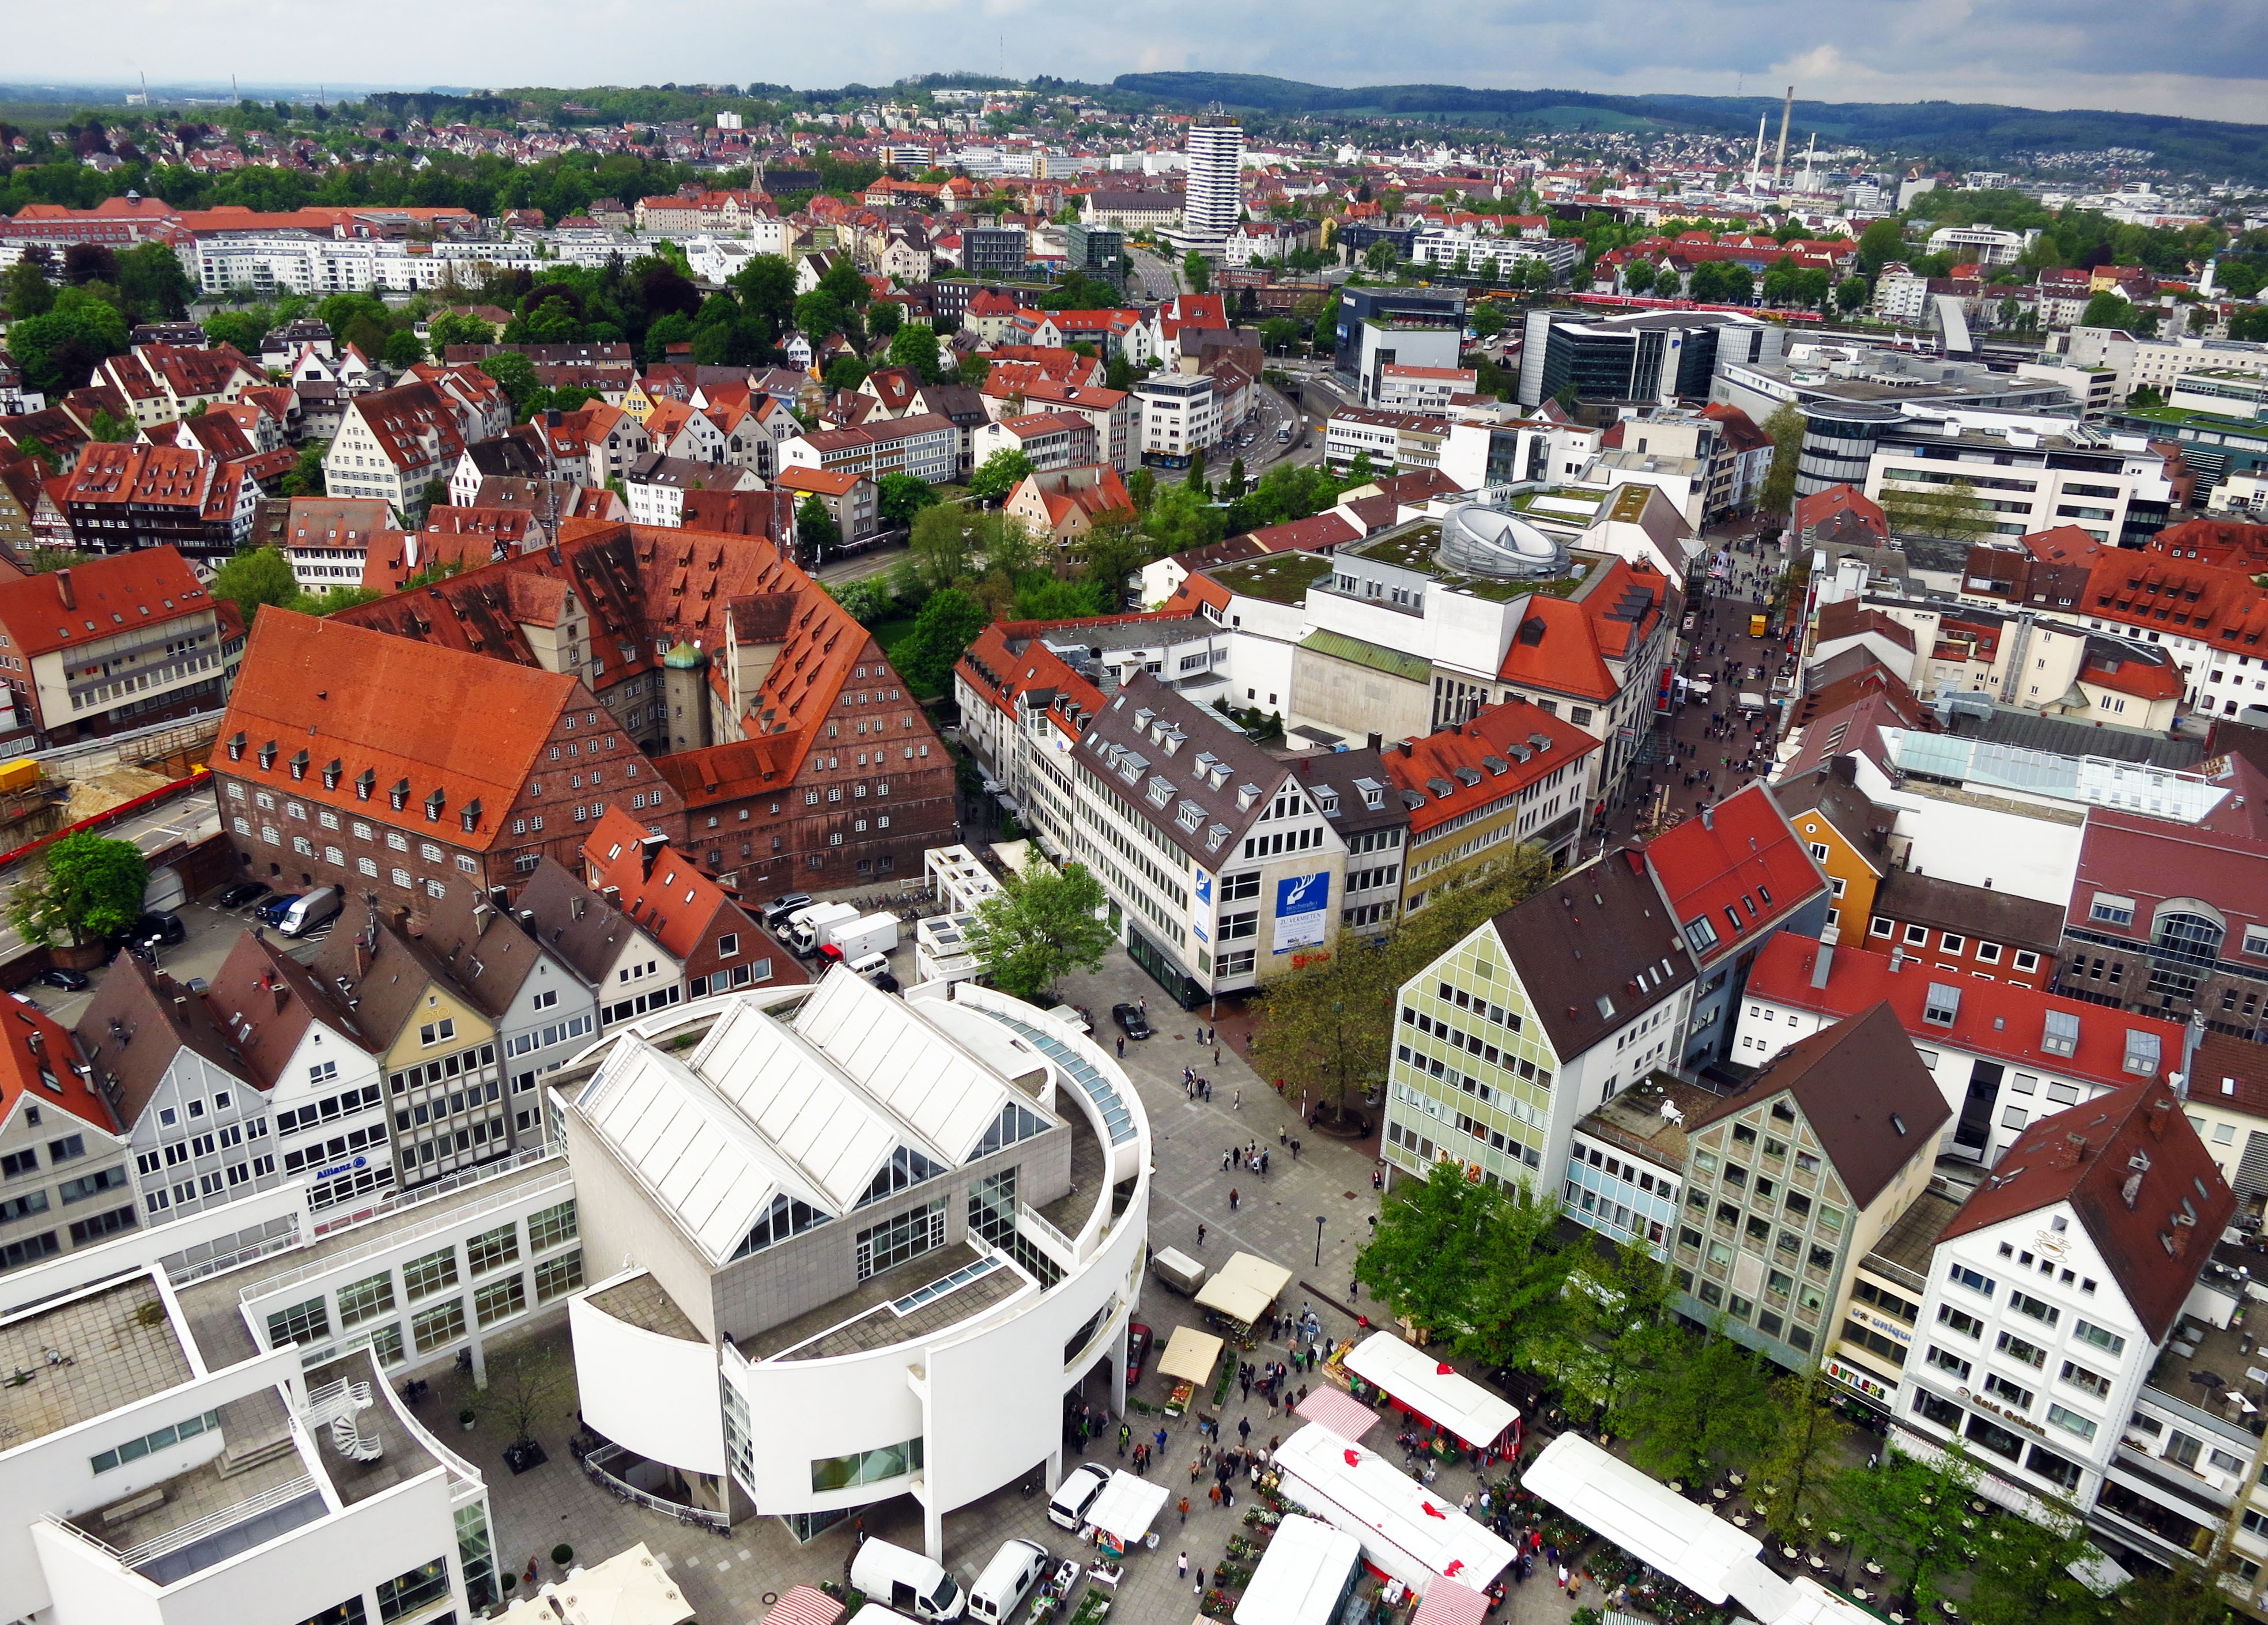 Bird's eye view of the town of Ulm